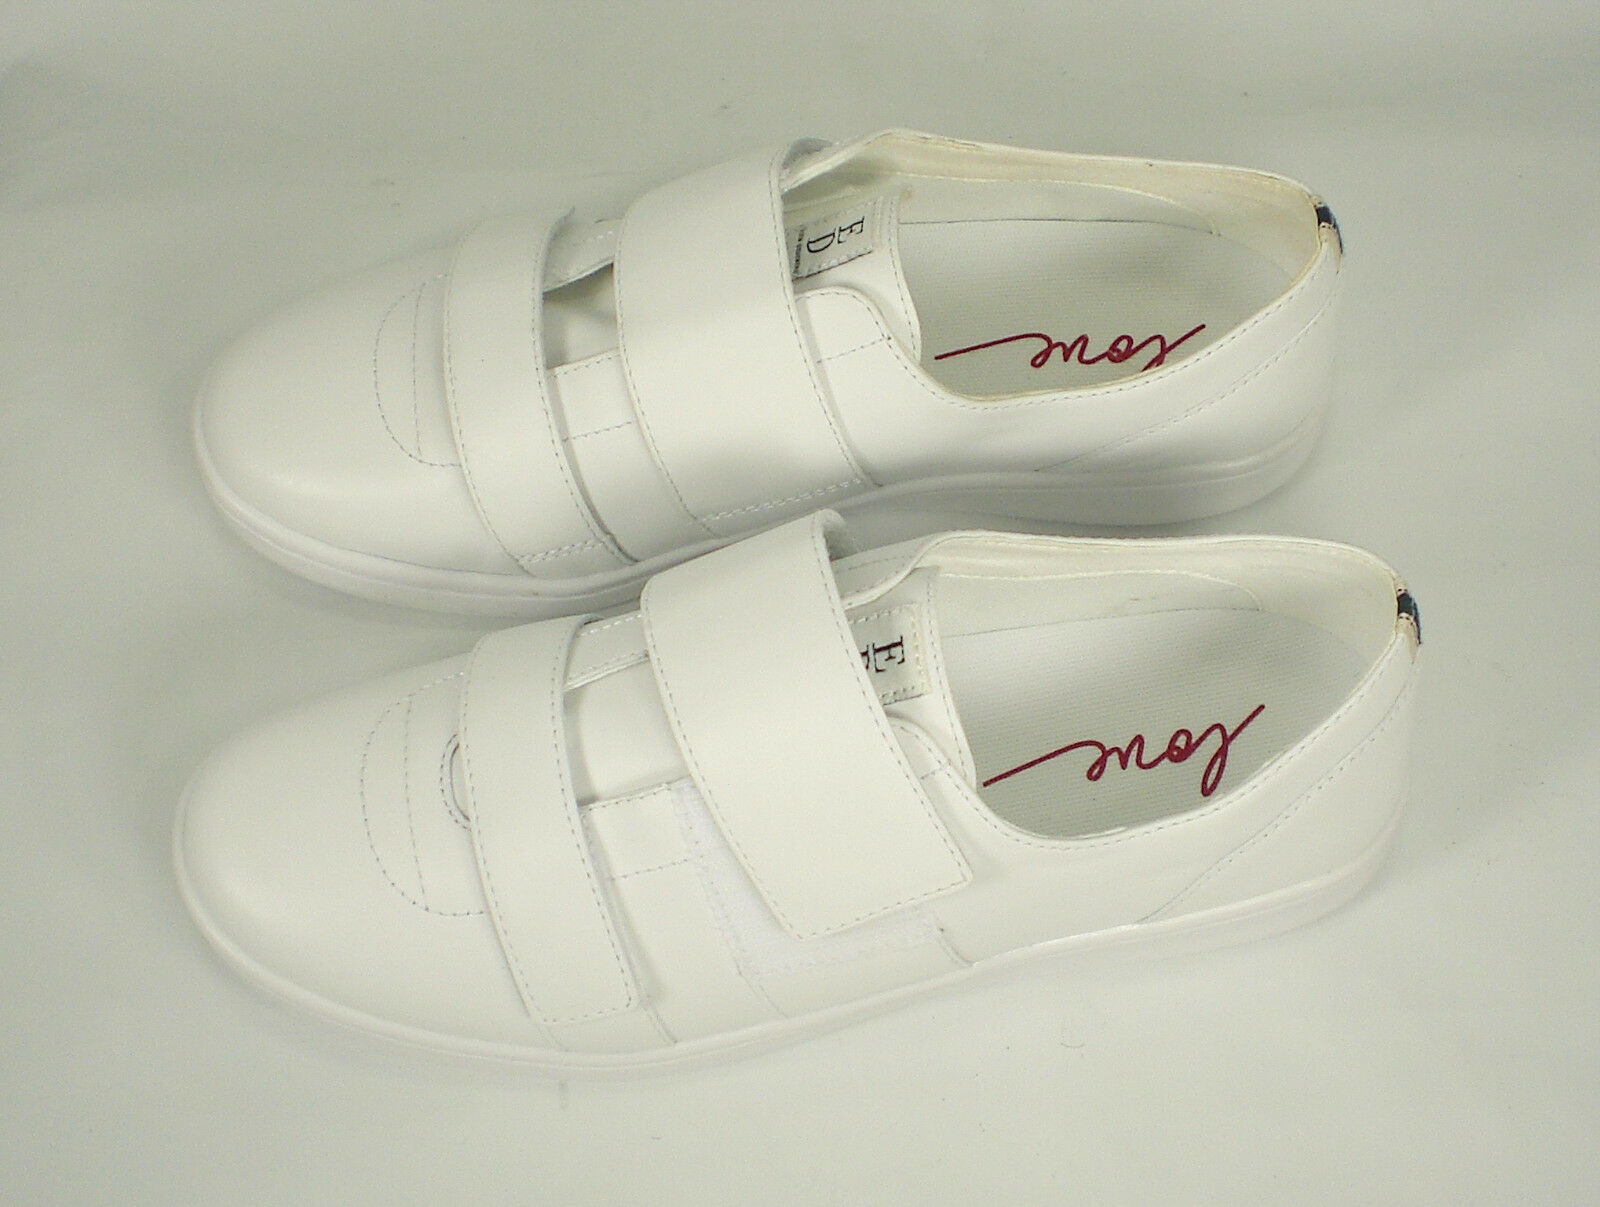 Ellen Degeneres NWOB Leather  Blanc  oxford sneaker chaussures femmes chaussures sneaker  Taille 10M f0f54d